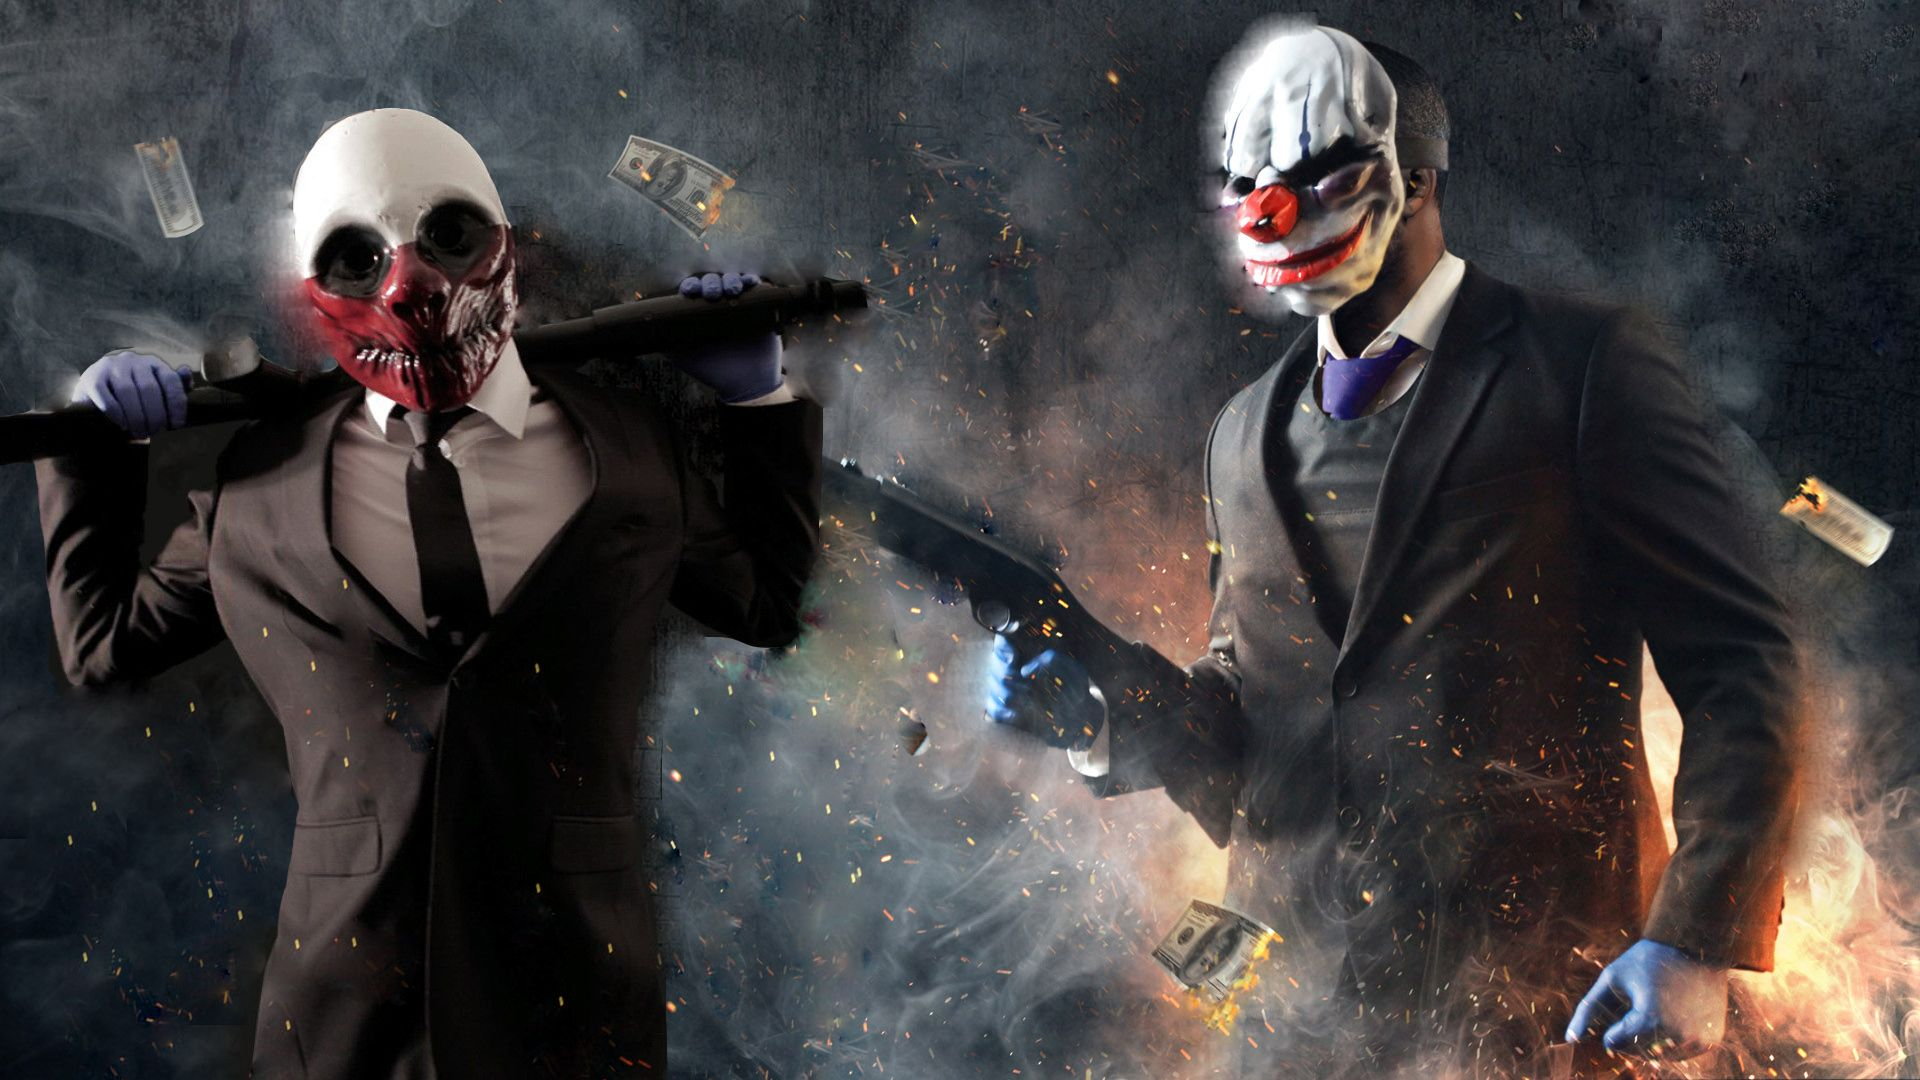 Ultra Hd 4k Payday 2 Wallpapers Hd Desktop Backgrounds 3840x2400